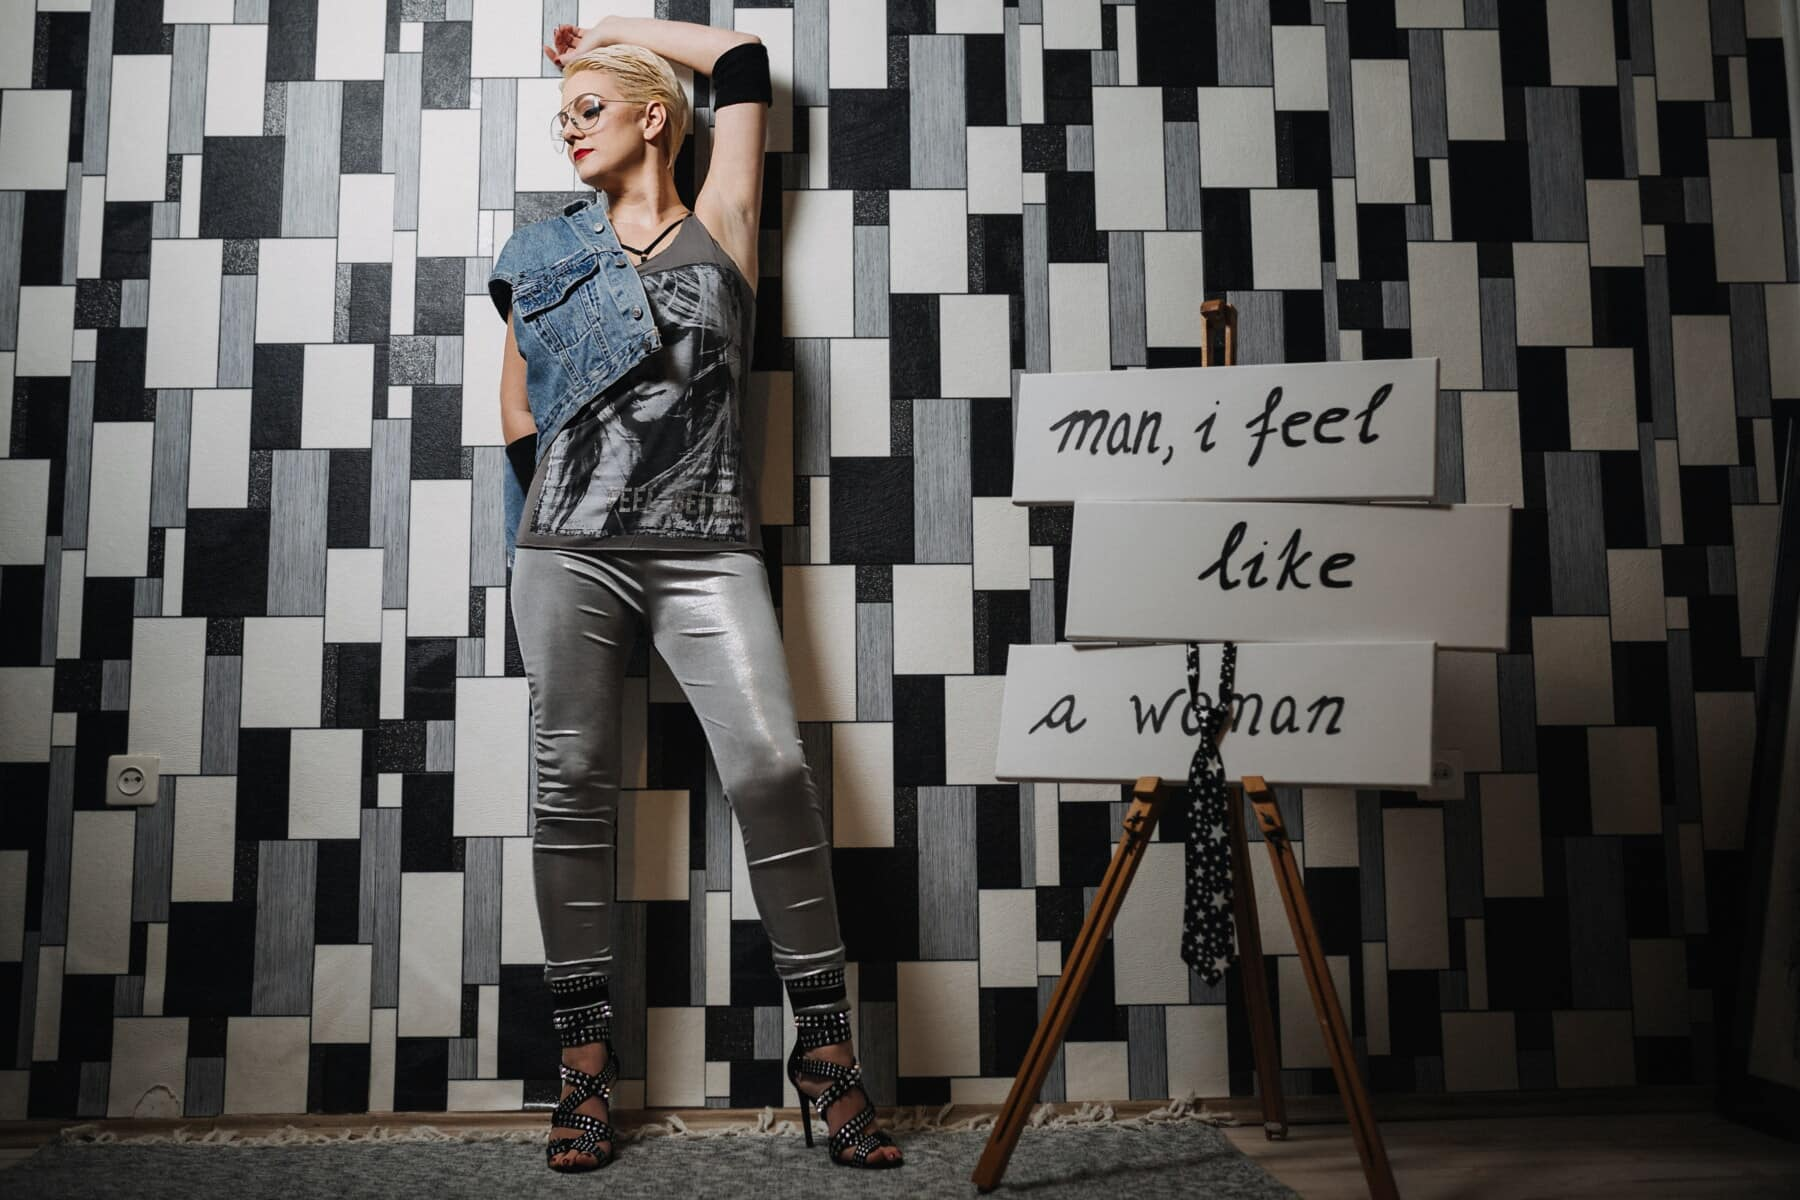 designer, young woman, photo model, outfit, style, glamour, jeans, posing, heels, pants